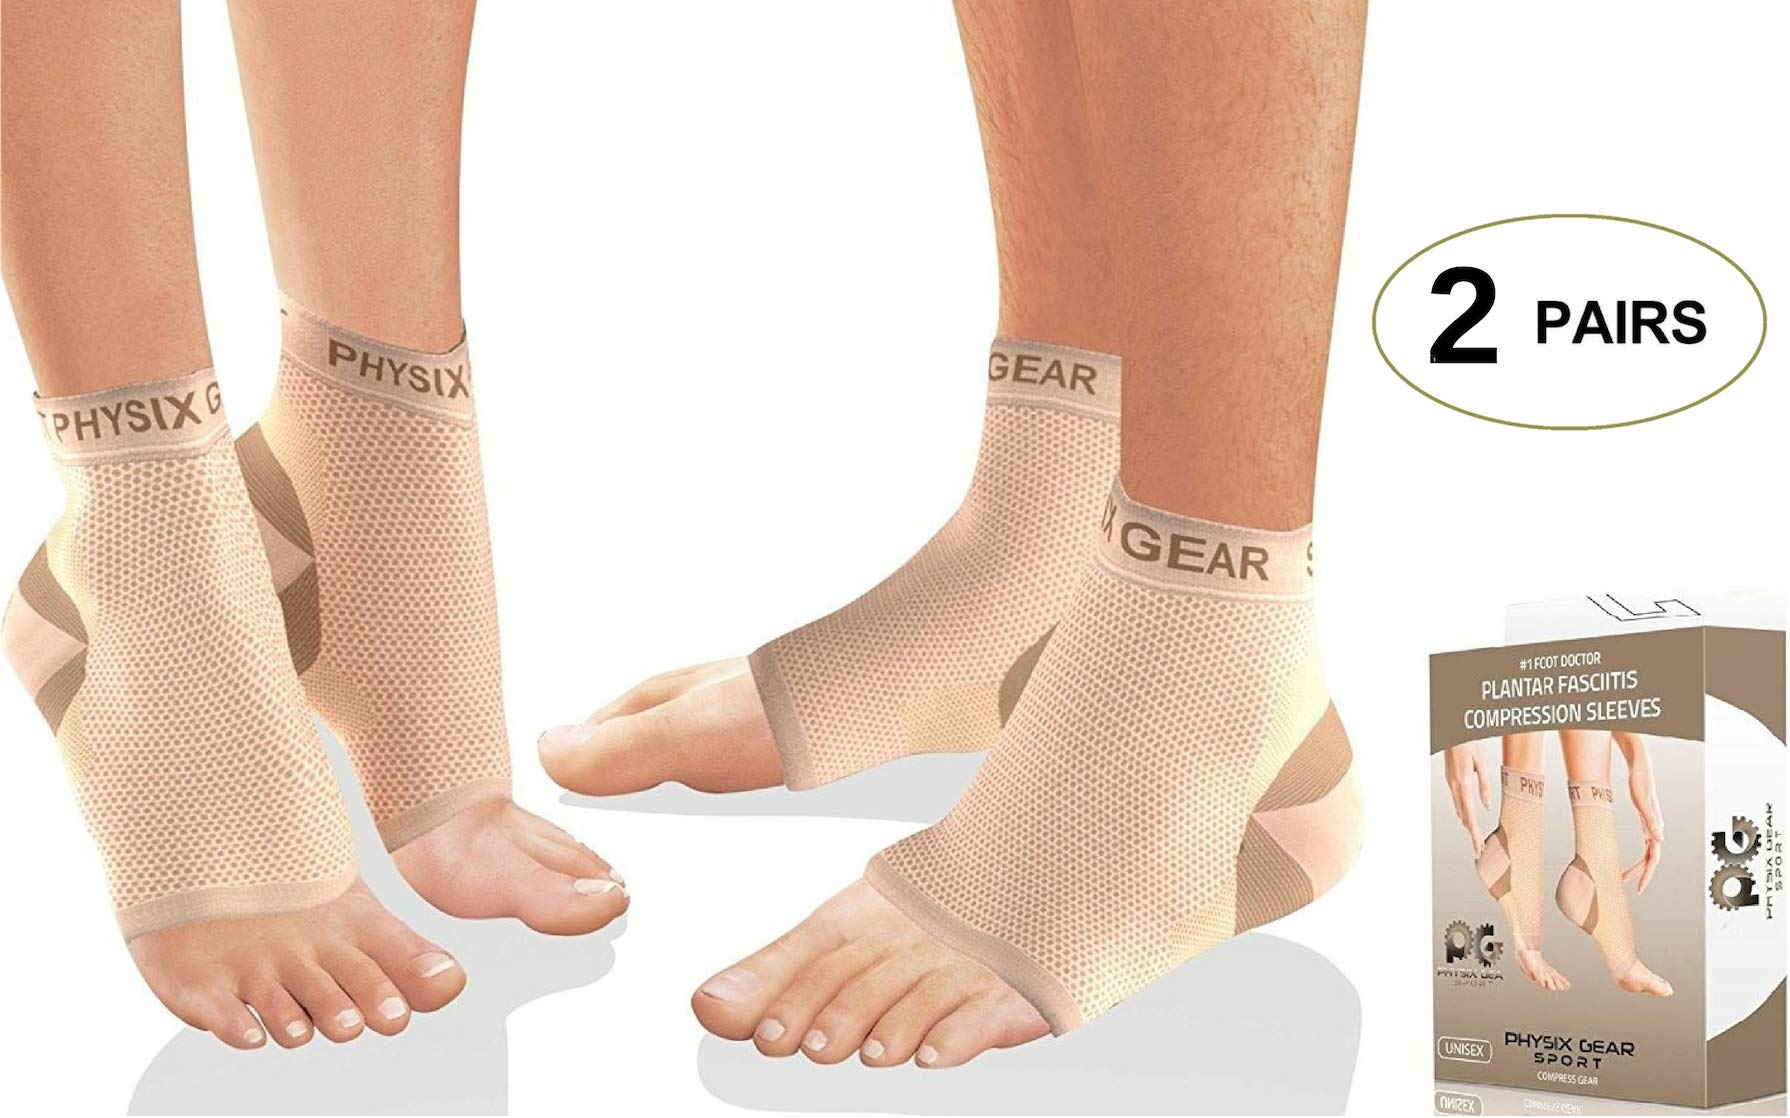 2 PAIRS Plantar Fasciitis Socks with Arch Support, BEST 24/7 Foot Care Compression Sleeve, Better than Night Splint, Eases Swelling & Heel Spurs, Ankle Circulation, Relieve Pain Fast - Beige S/M